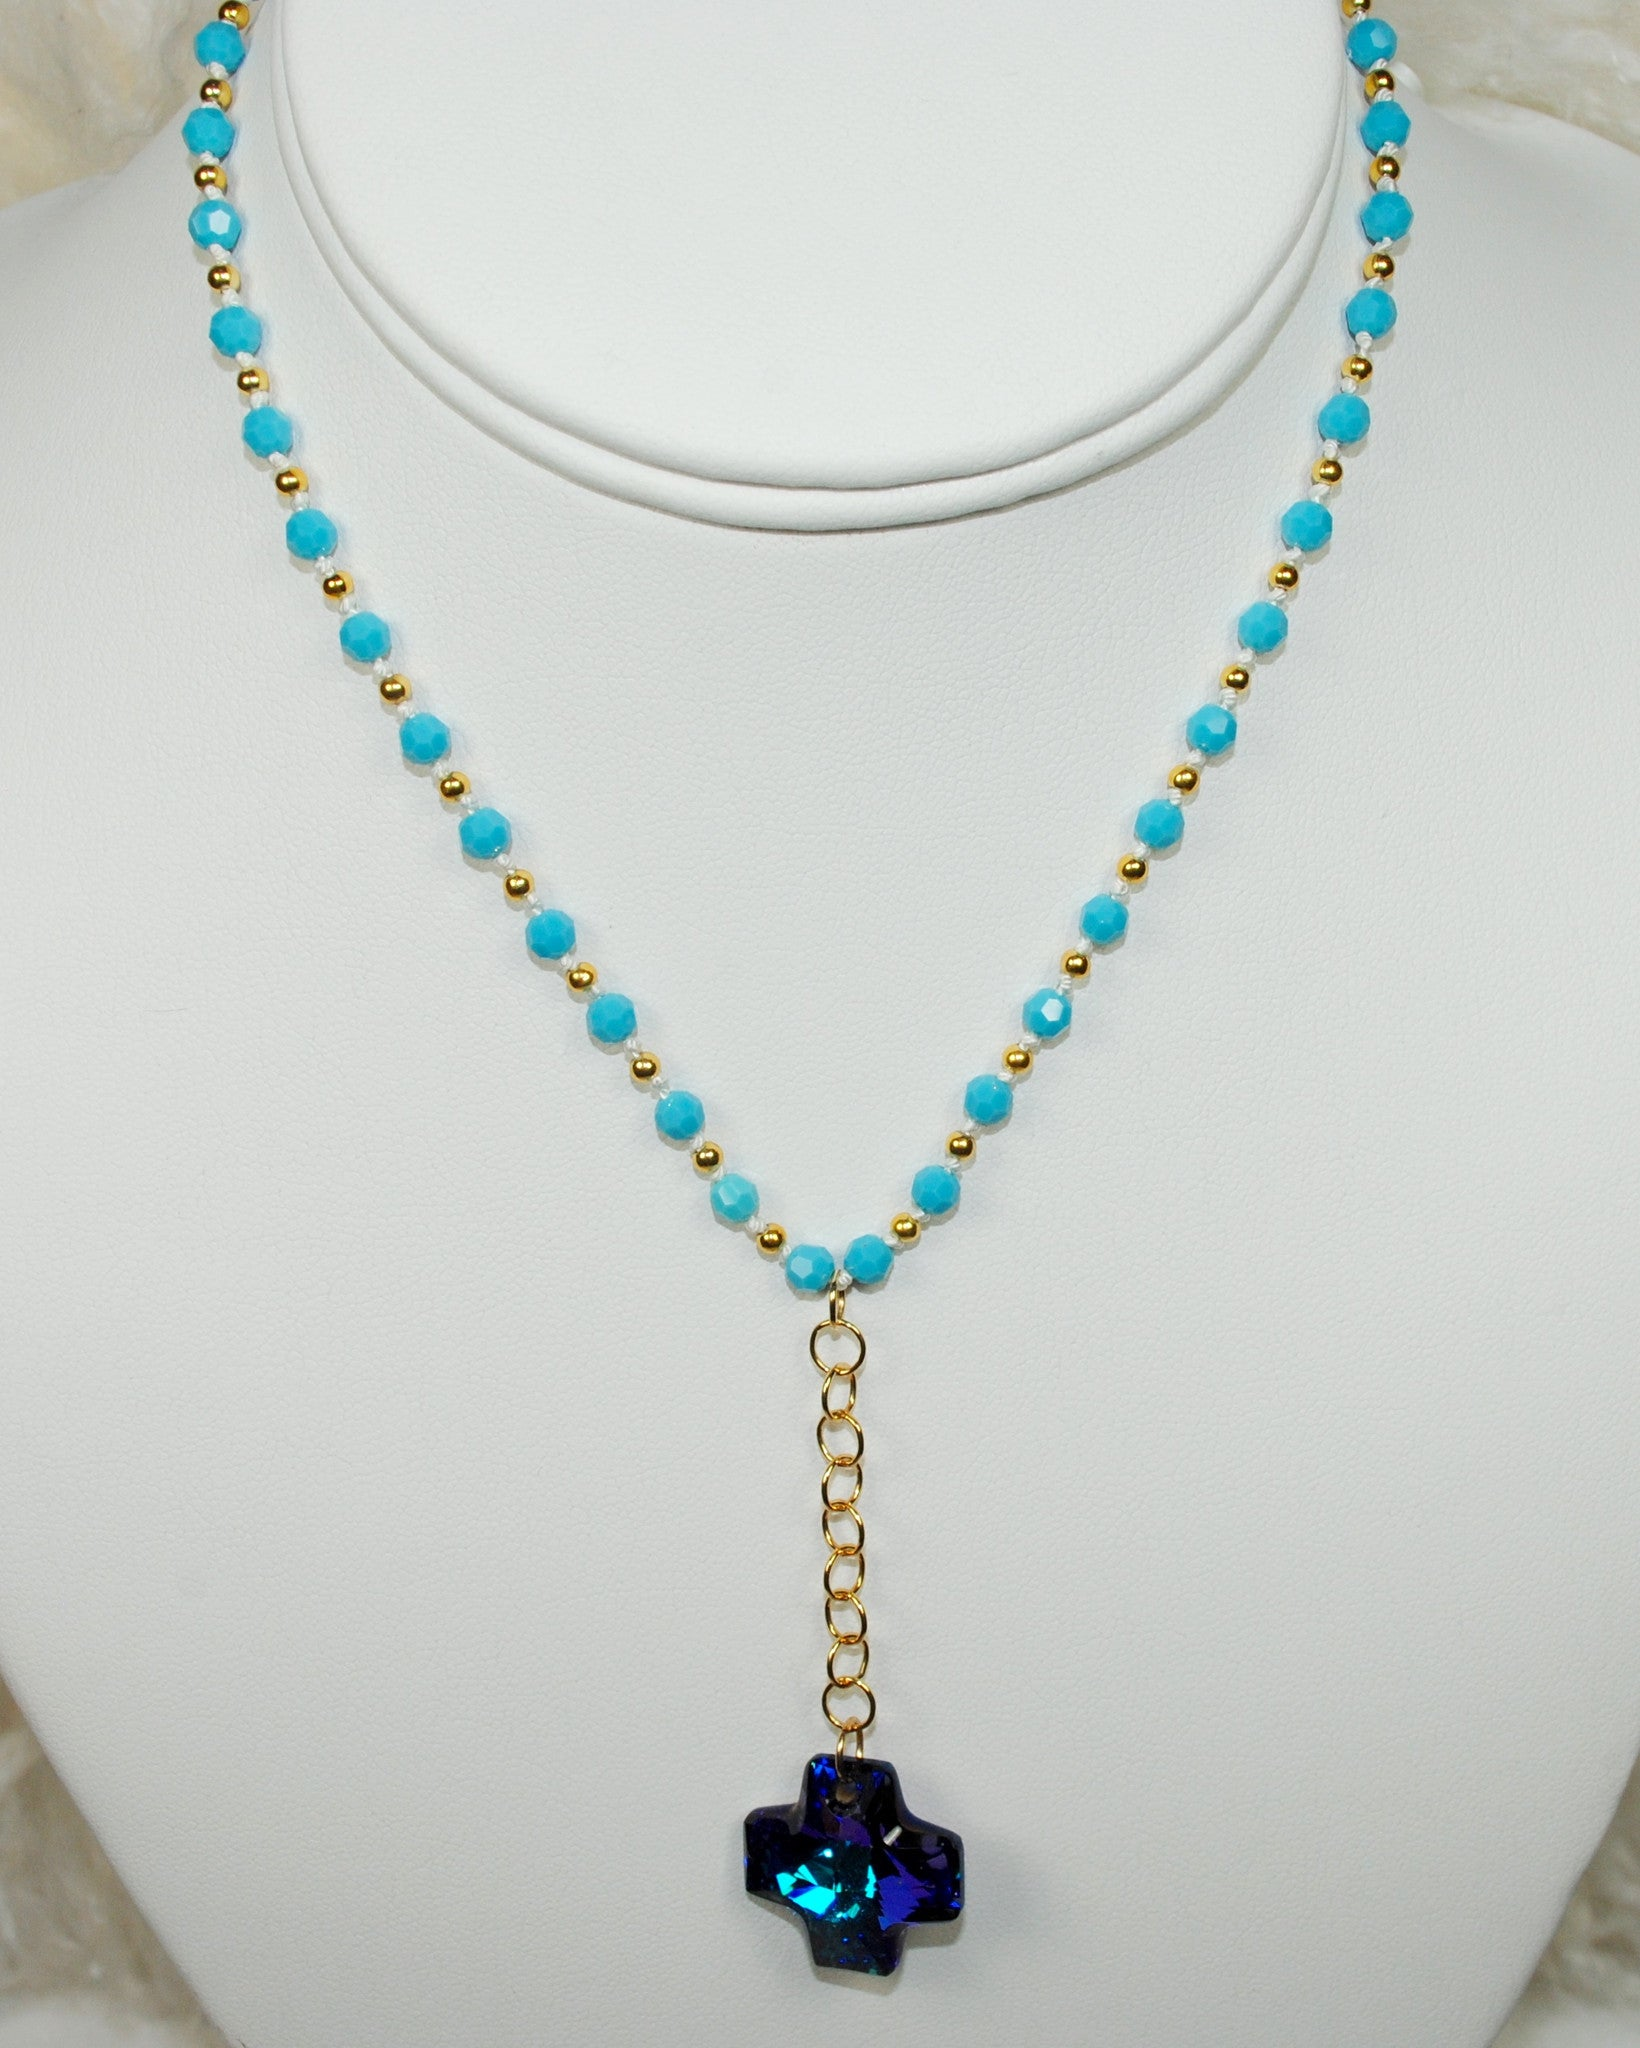 Turquoise Necklace w/ Cross